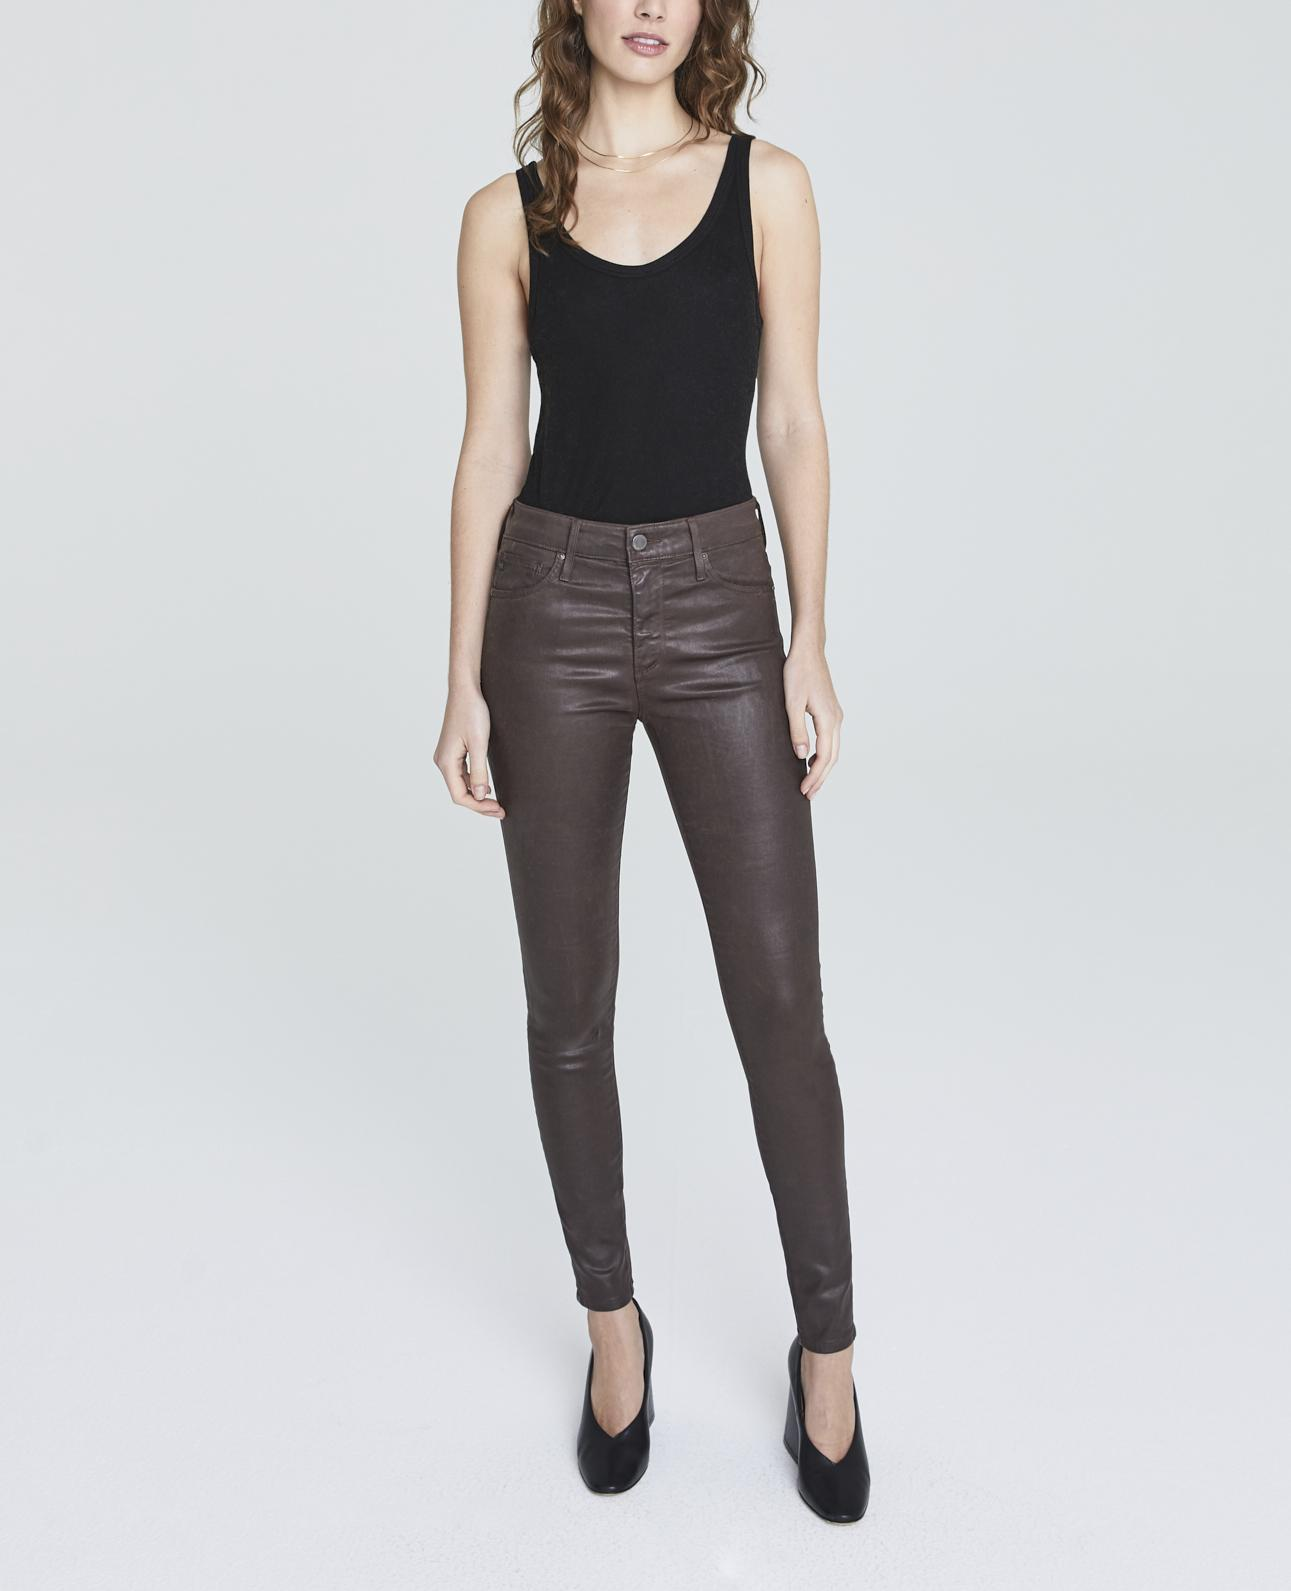 AG Adriano Goldschmied Womens Farrah Leatherette High-Rise Skinny Fit Ankle Pant